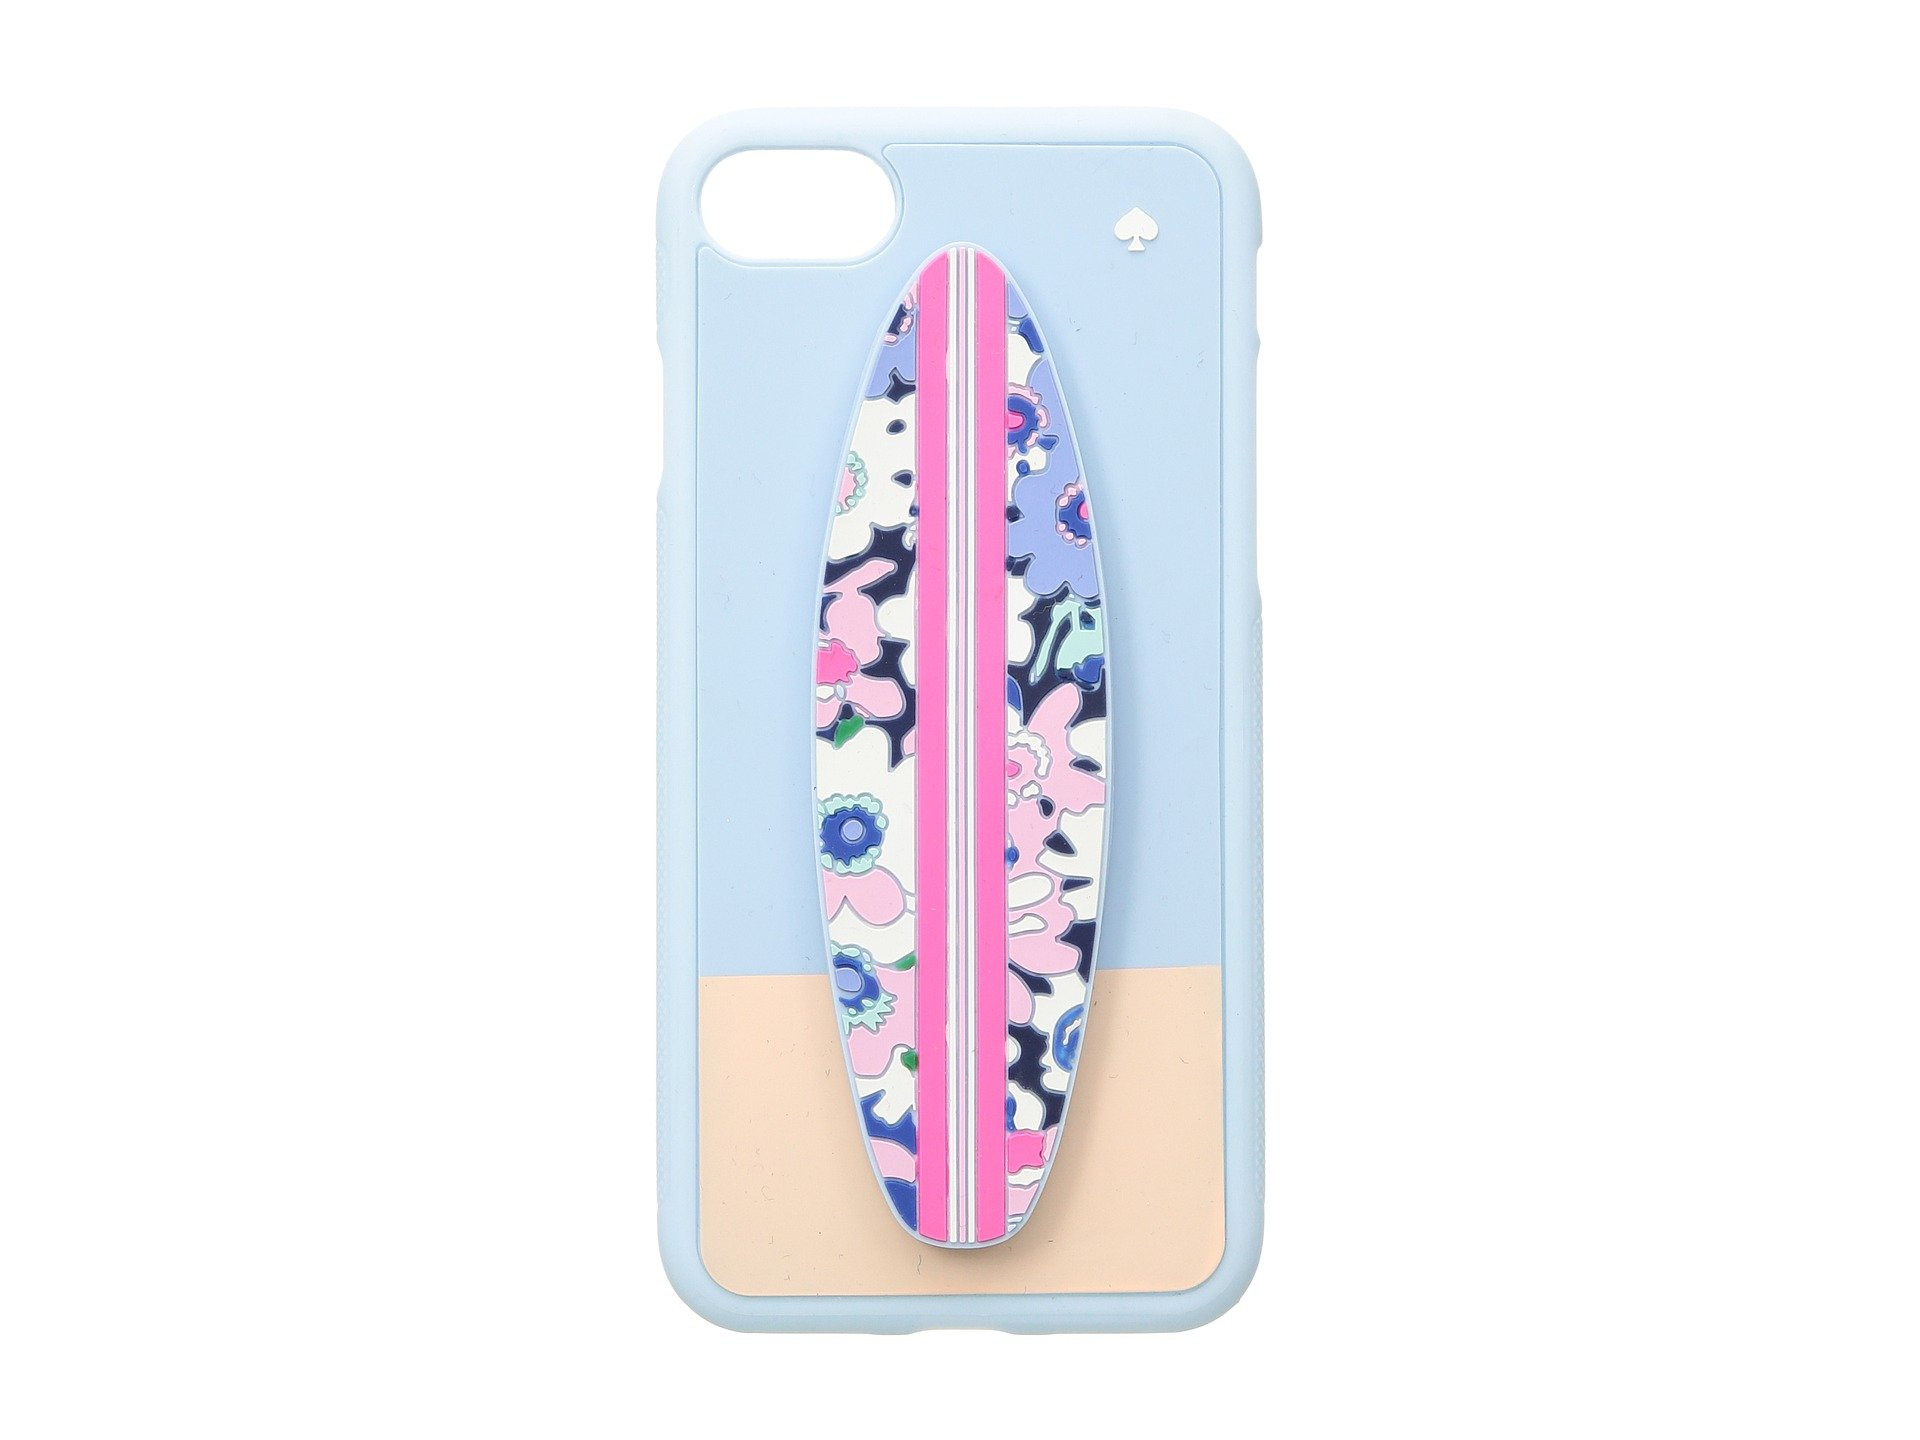 Accesorio para el Celular Kate Spade New York Silicone Surfboard Stand Phone Case for iPhone 8  + Kate Spade New York en VeoyCompro.net